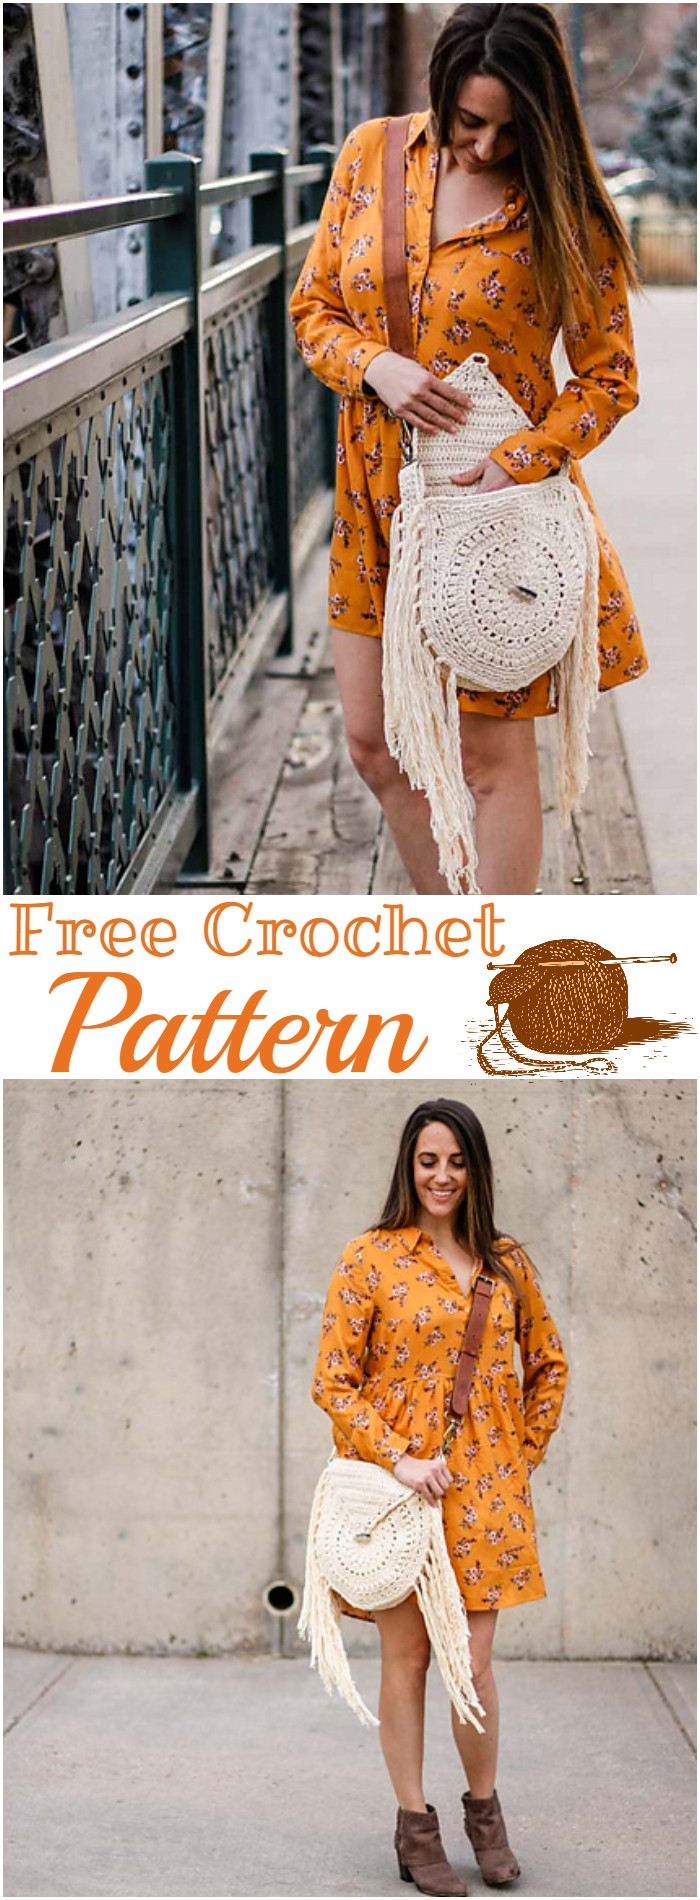 Free Crochet Moonrise Boho Bag